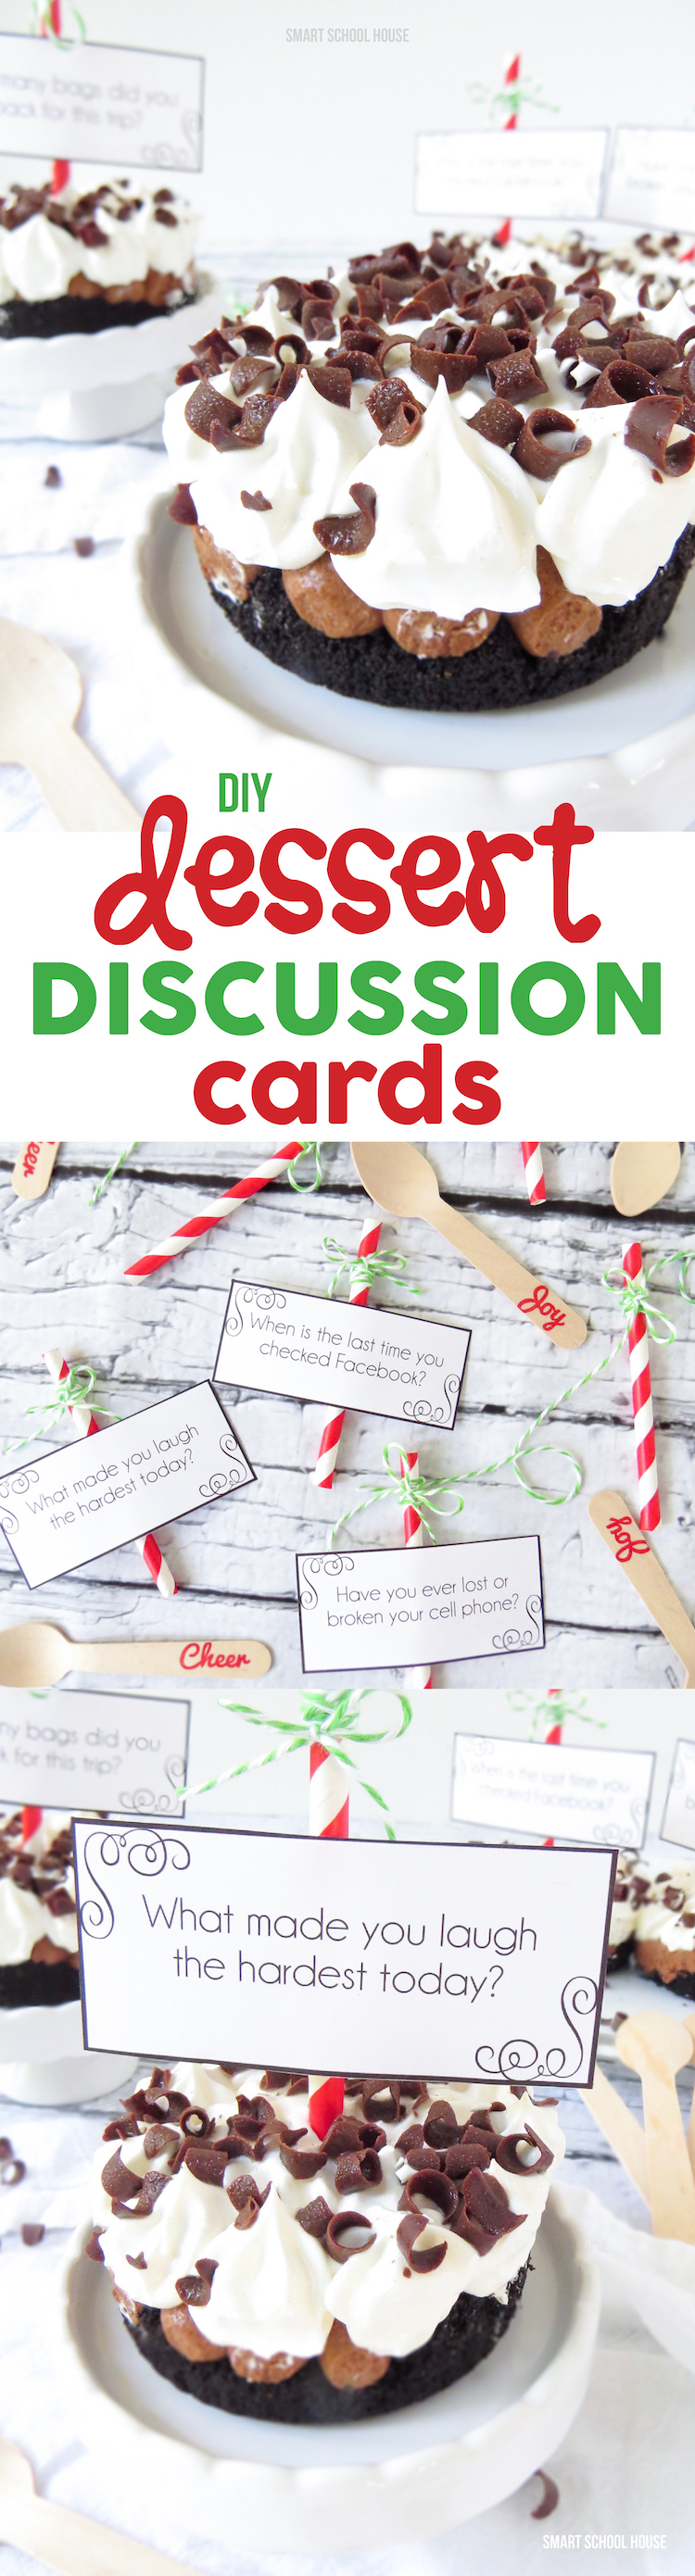 Dessert Discussion Cards - free printables! Print out these fun Dessert Discussion Cards to keep the smiles and the fun energy going even after dinner is gobbled up.